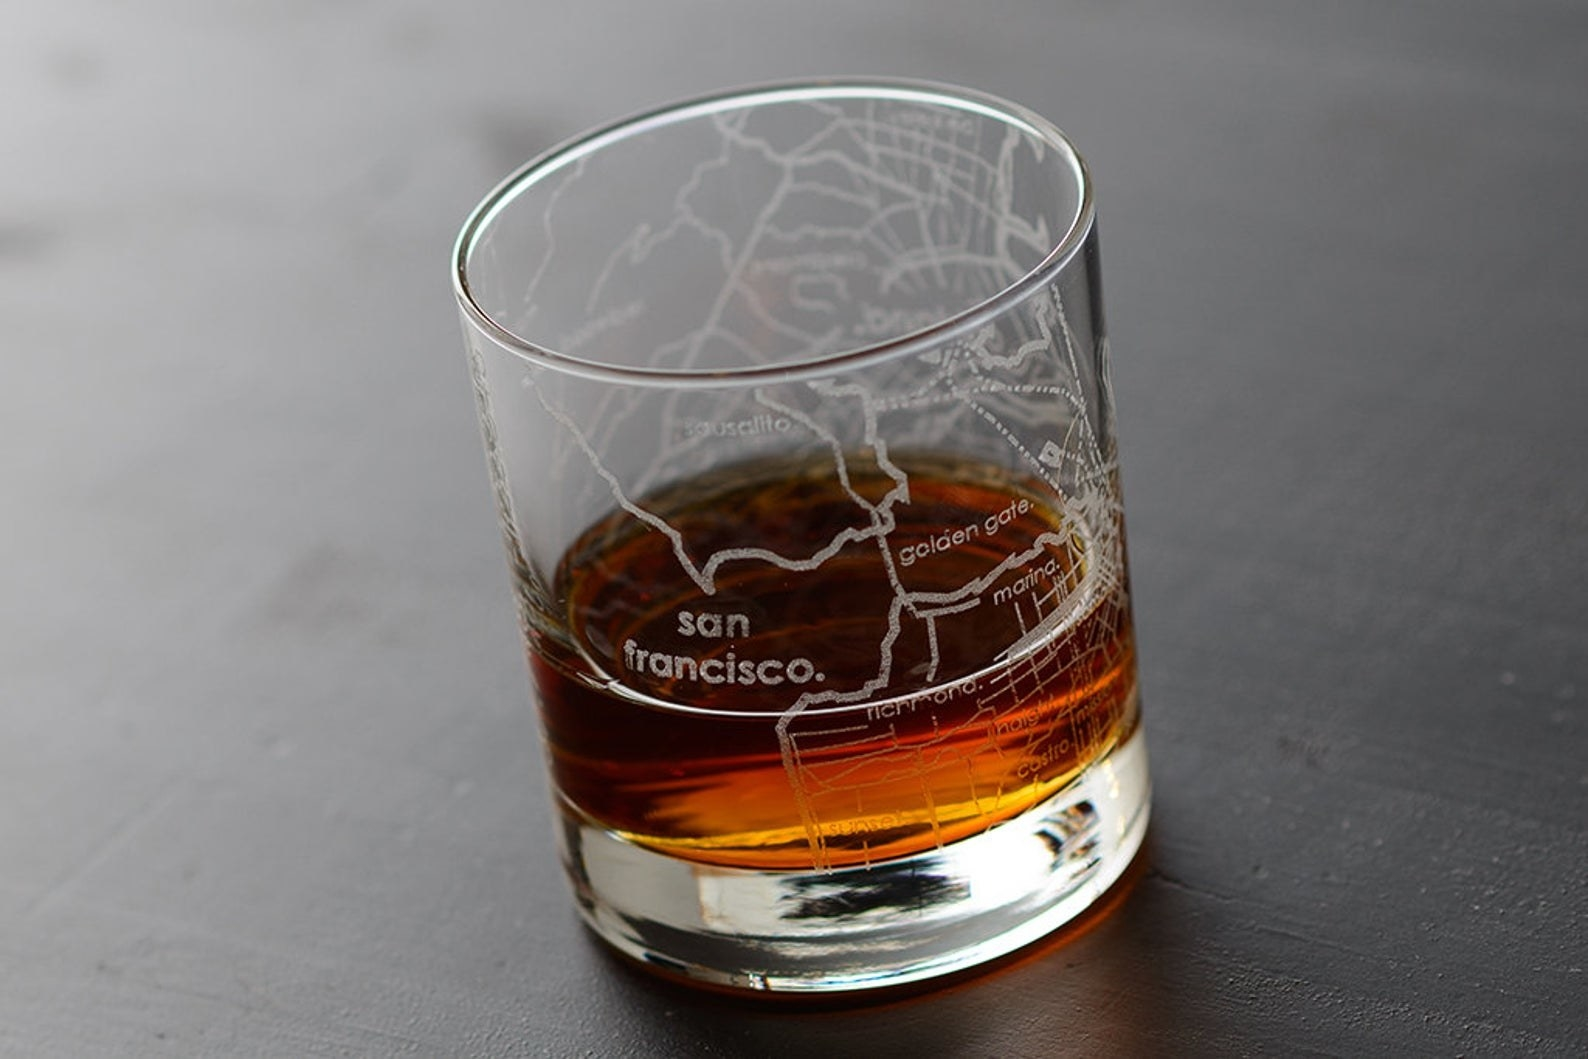 A transparent whiskey glass with an etched map of San Francisco